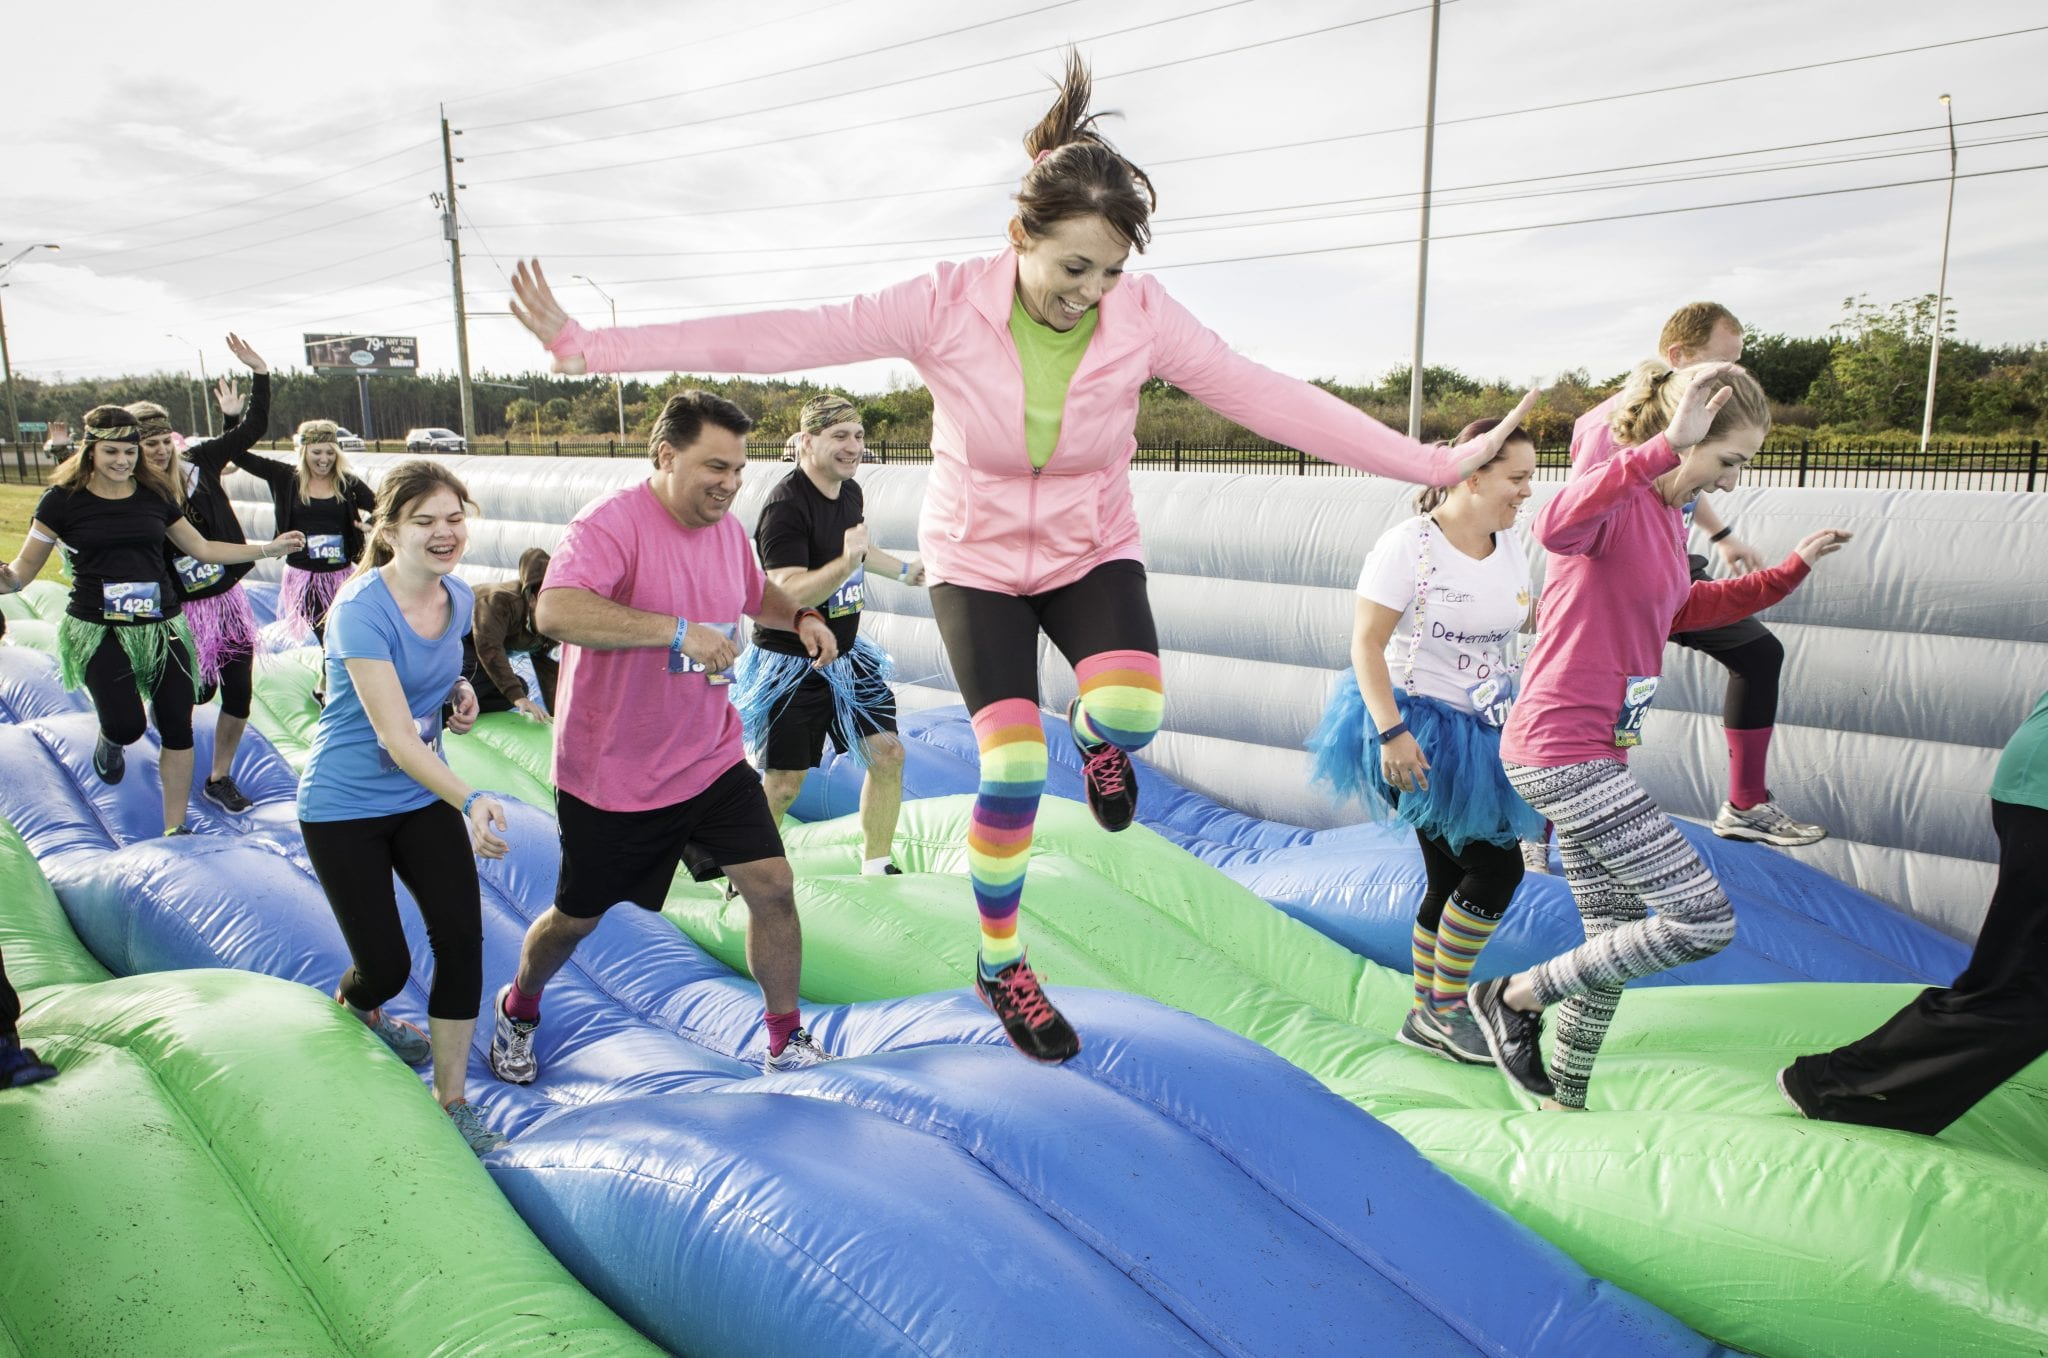 Insane inflatable 5k coming to bossier nov 12 bossier for Insane inflatable 5k shirt